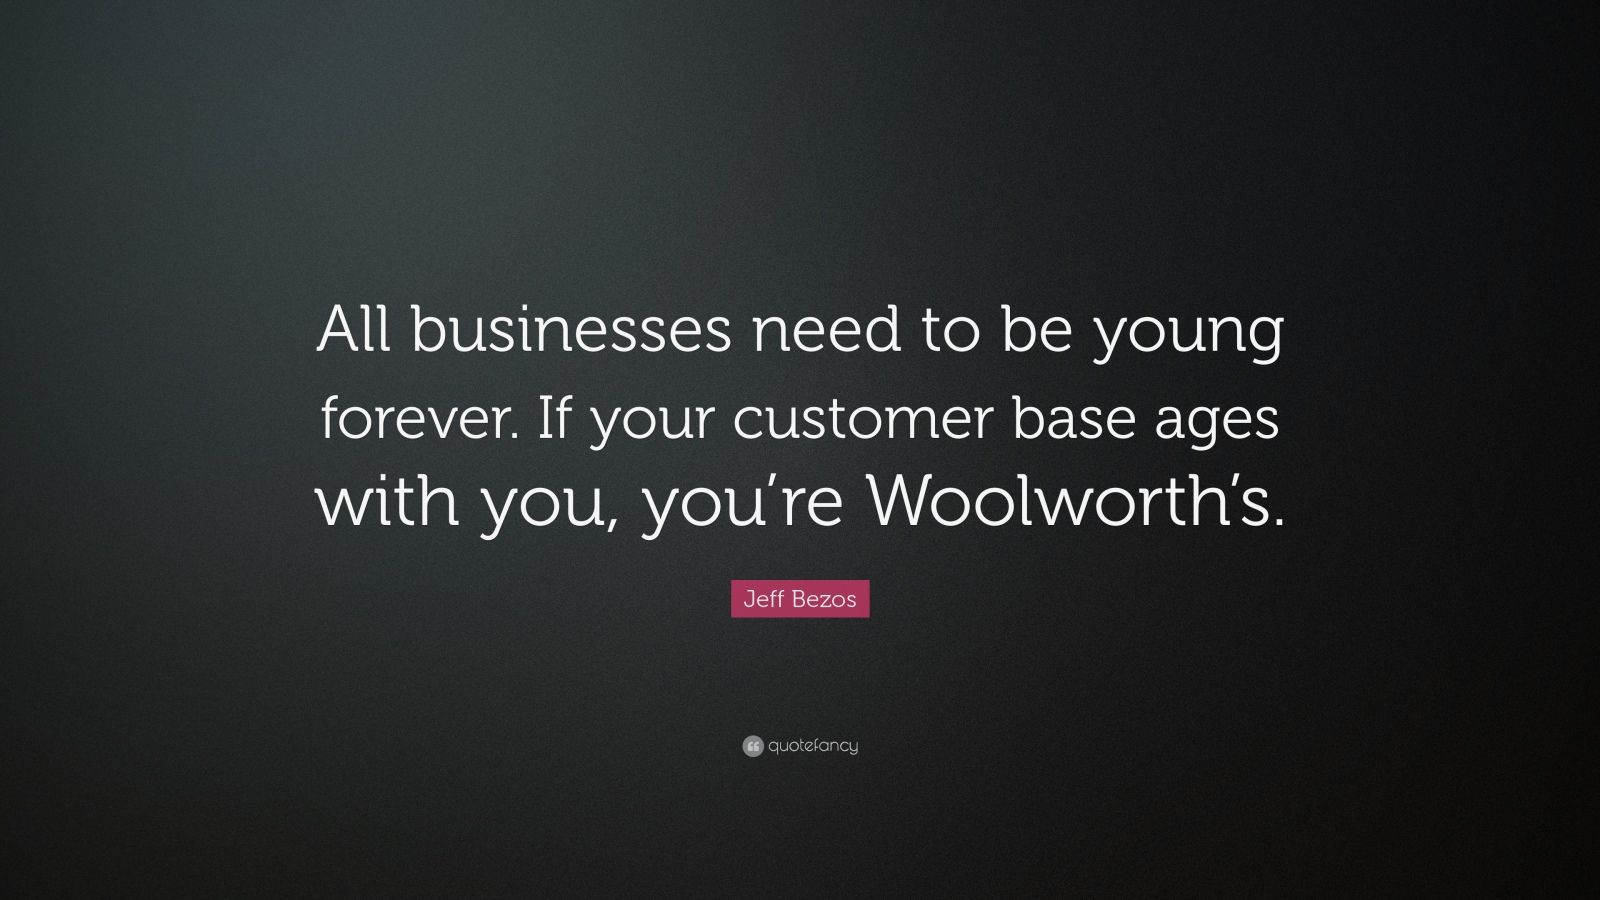 """Jeff Bezos Quote: """"All businesses need to be young forever. If your customer base ages with you, you're Woolworth's."""""""